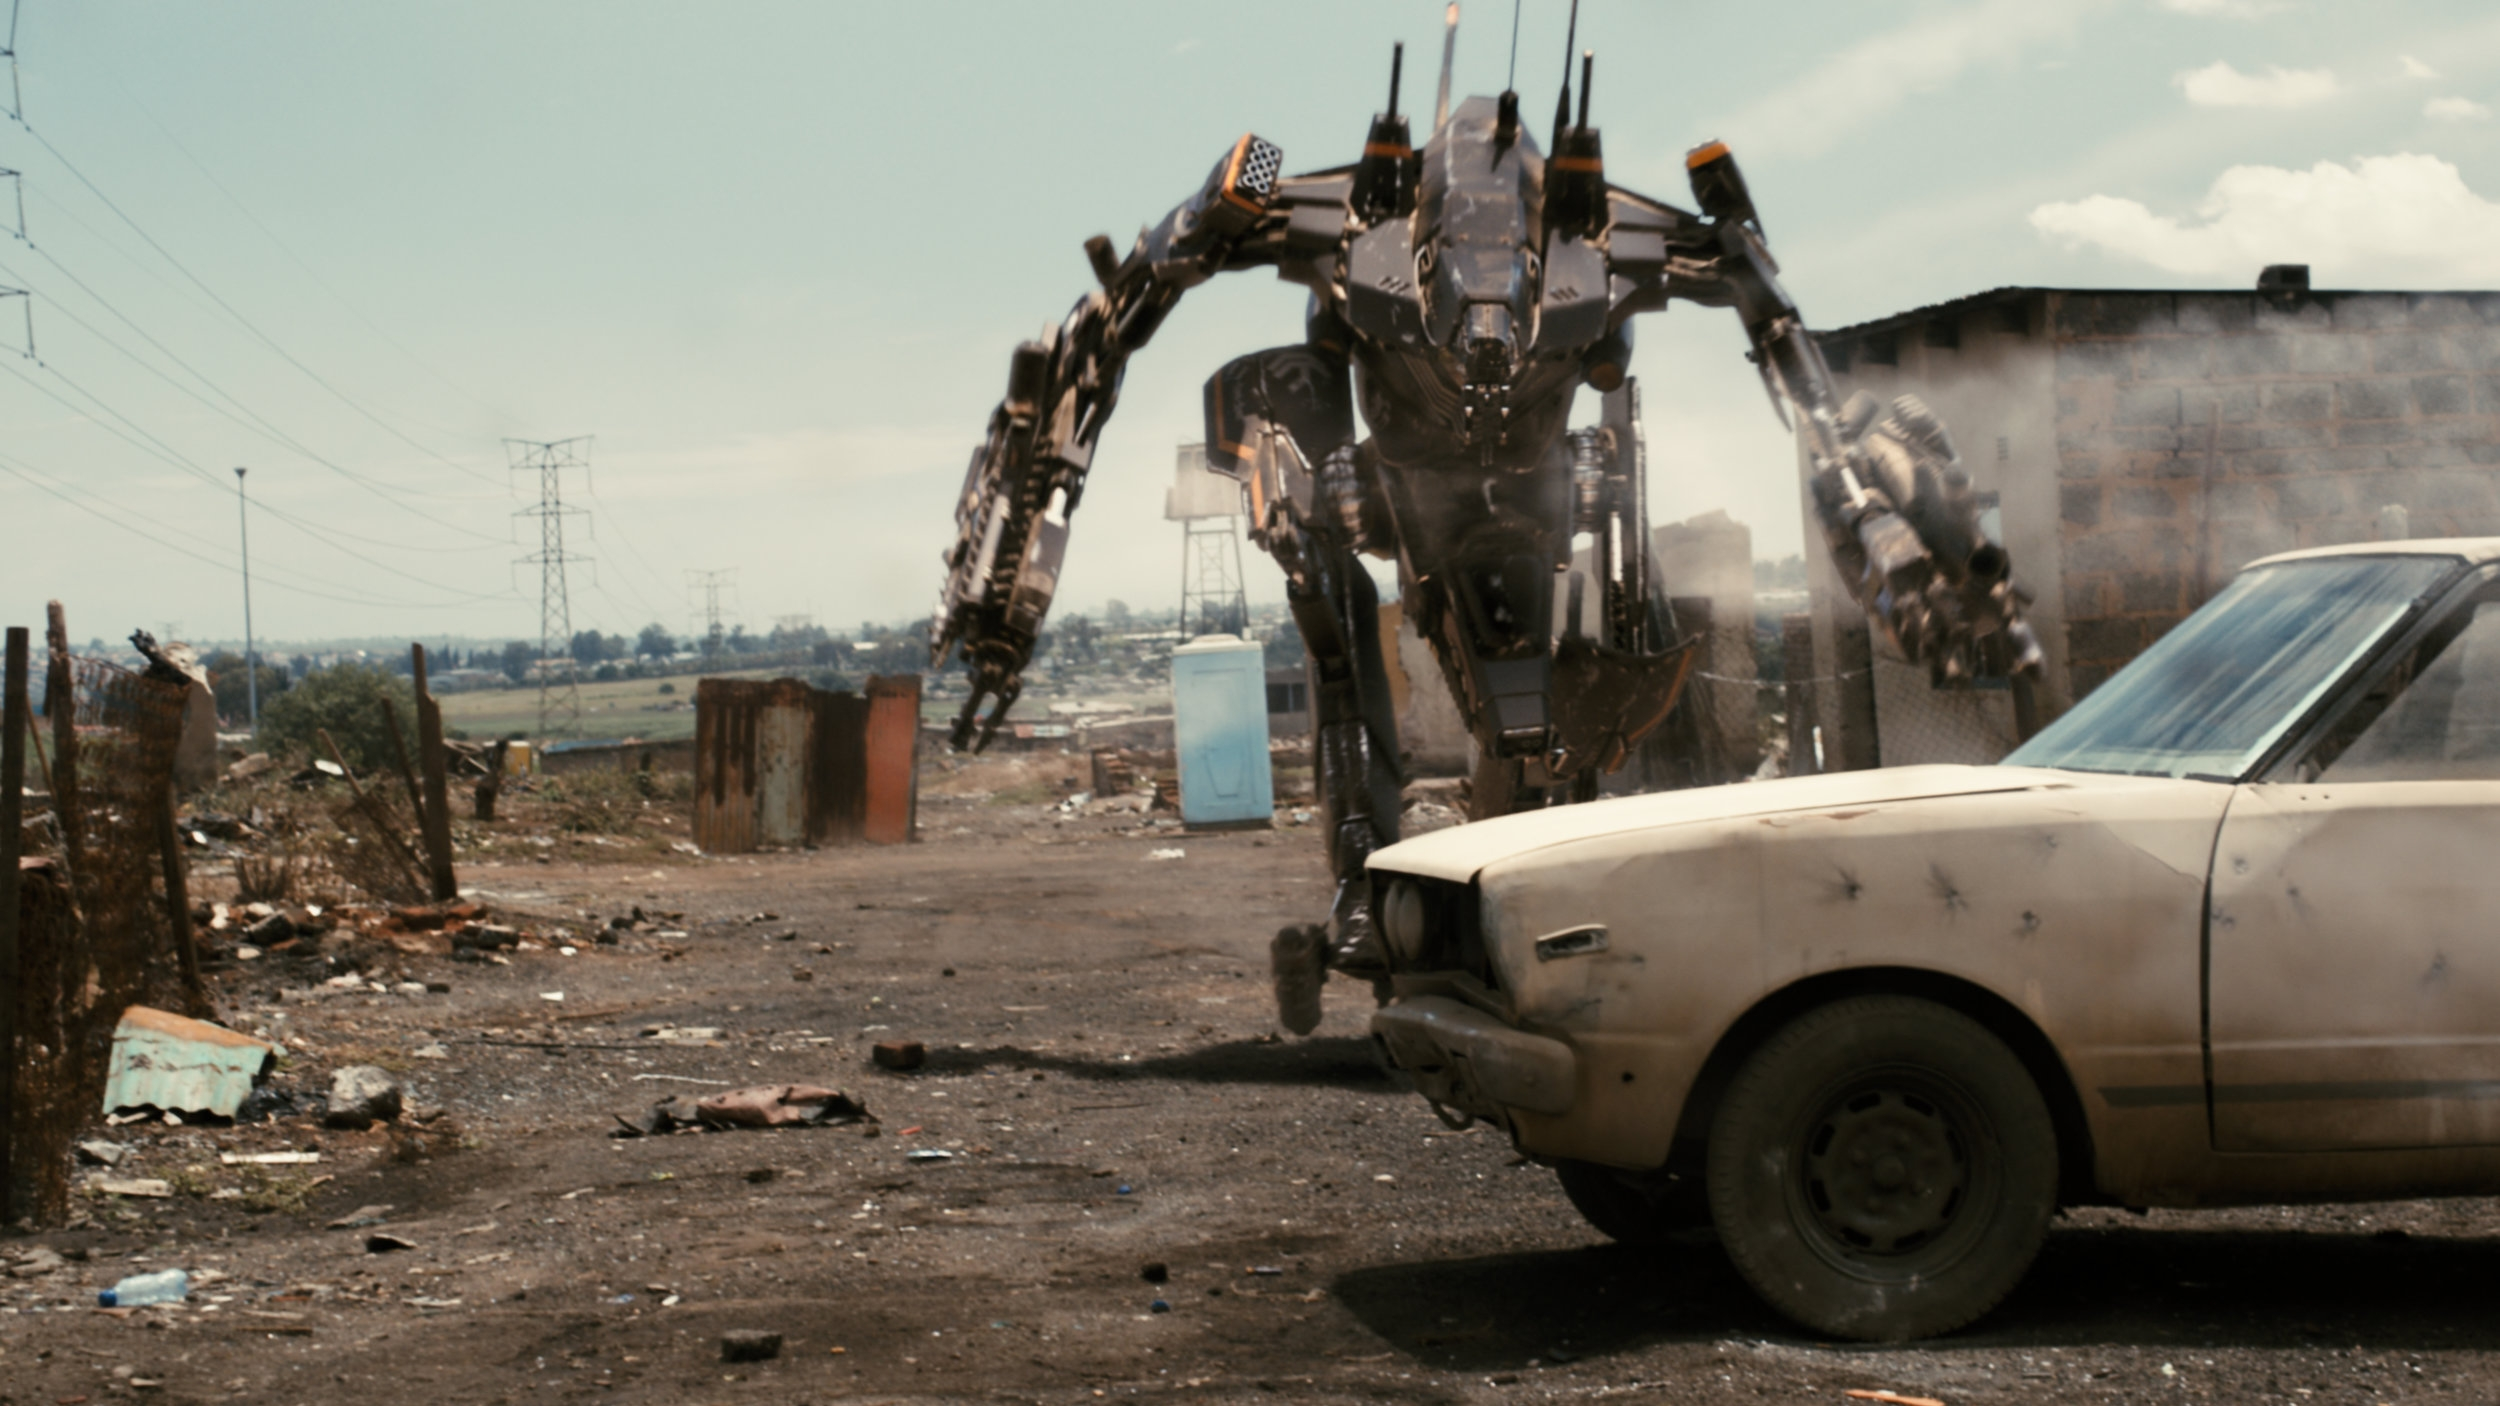 #37) District 9 - (2009 - dir. Neil Blomkamp)